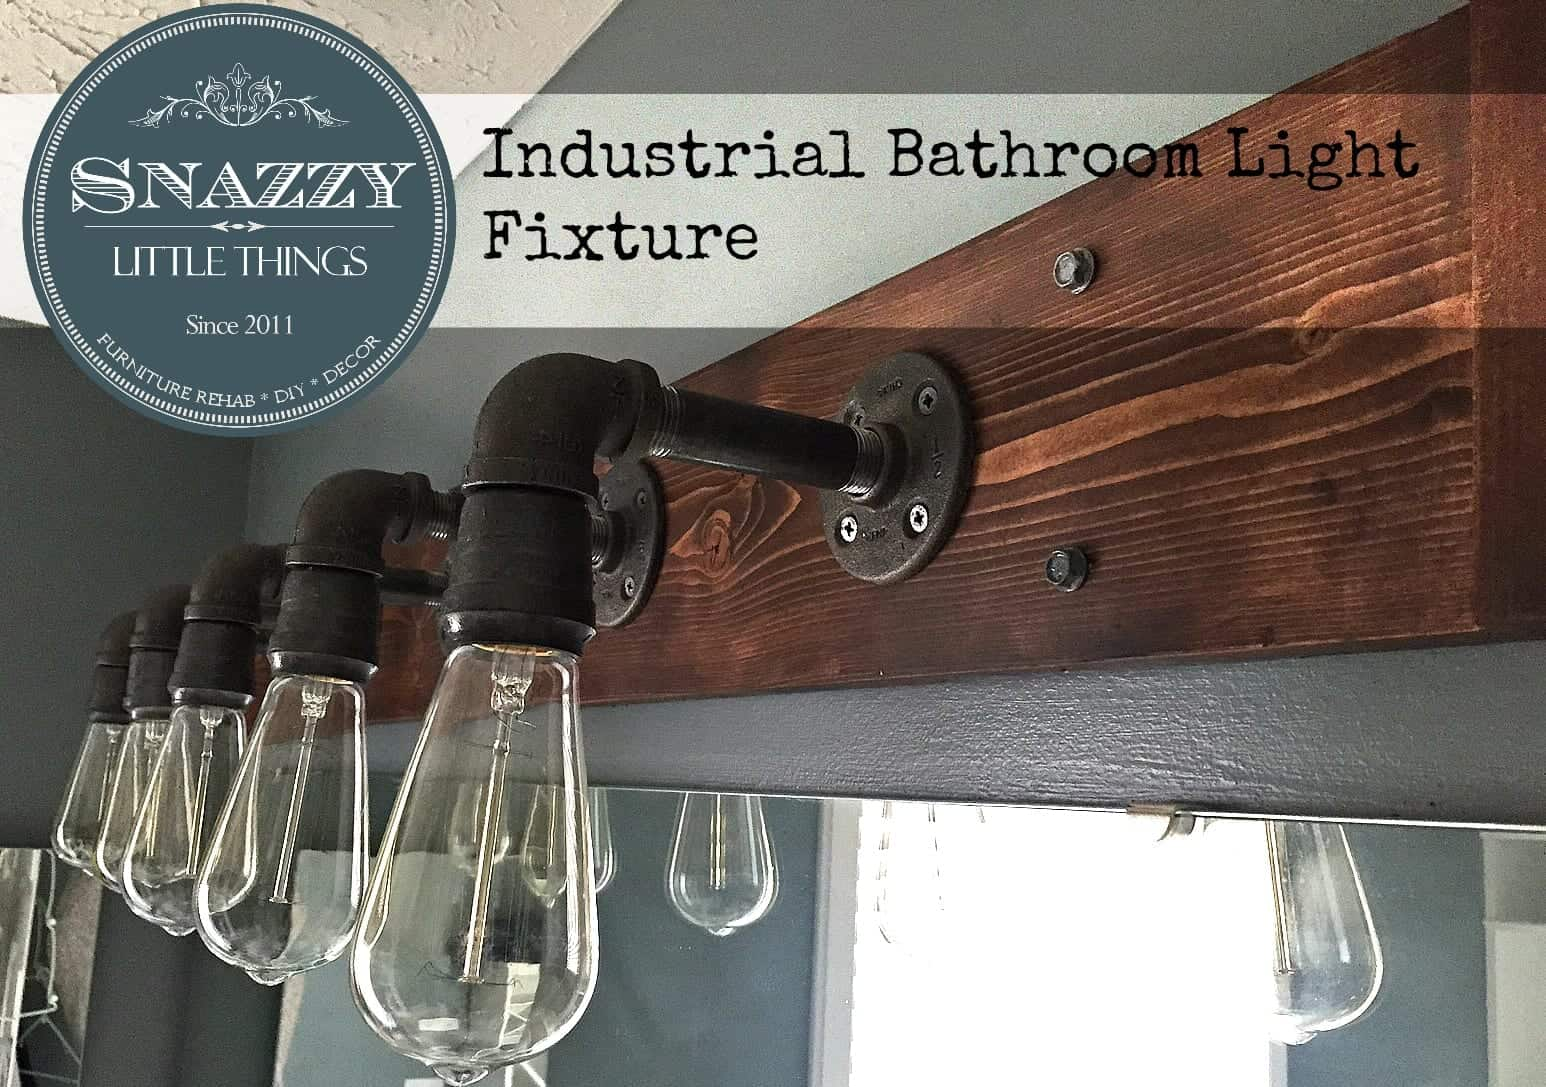 DIY Industrial Bathroom Light Fixture